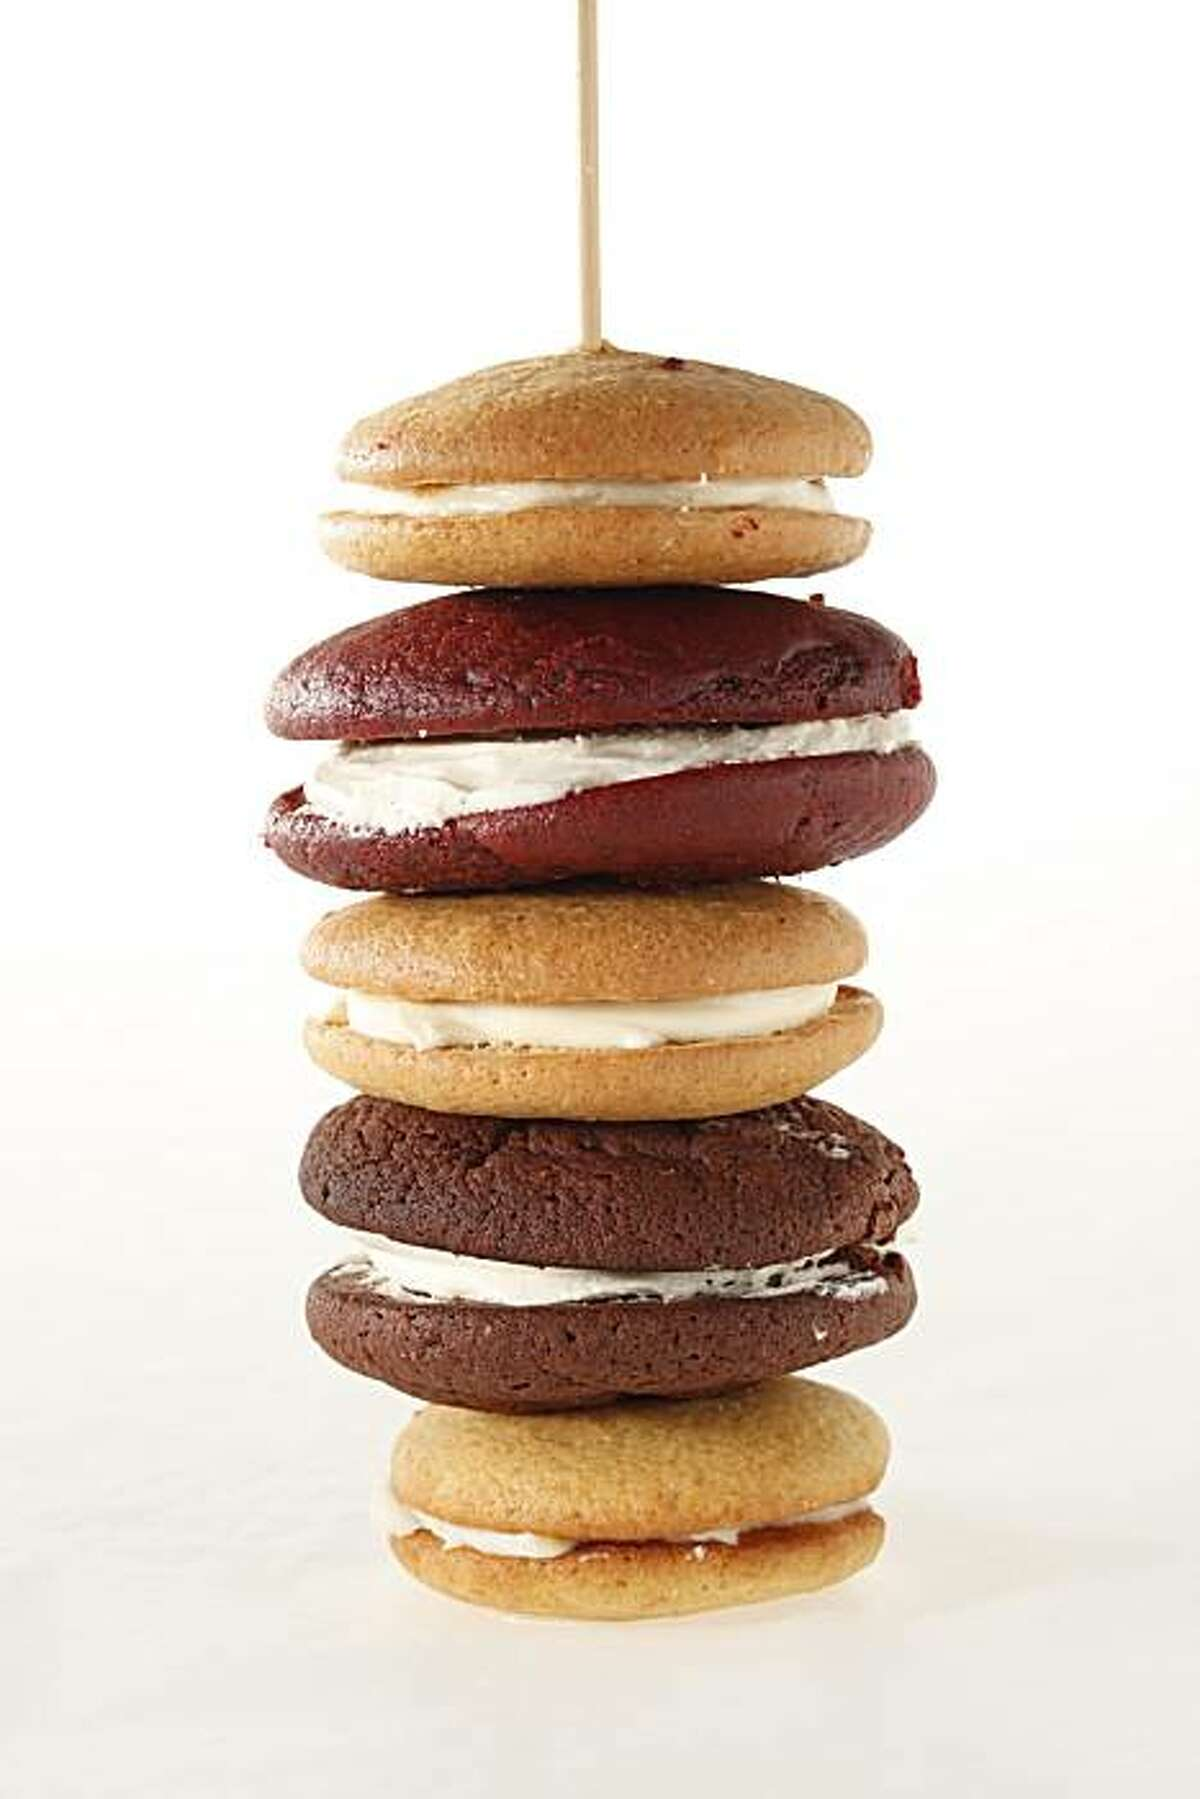 Whoopie Pie, stacks of 1) Red velvet w marshmallow filling ; 2) Chocolate (traditional) ones w